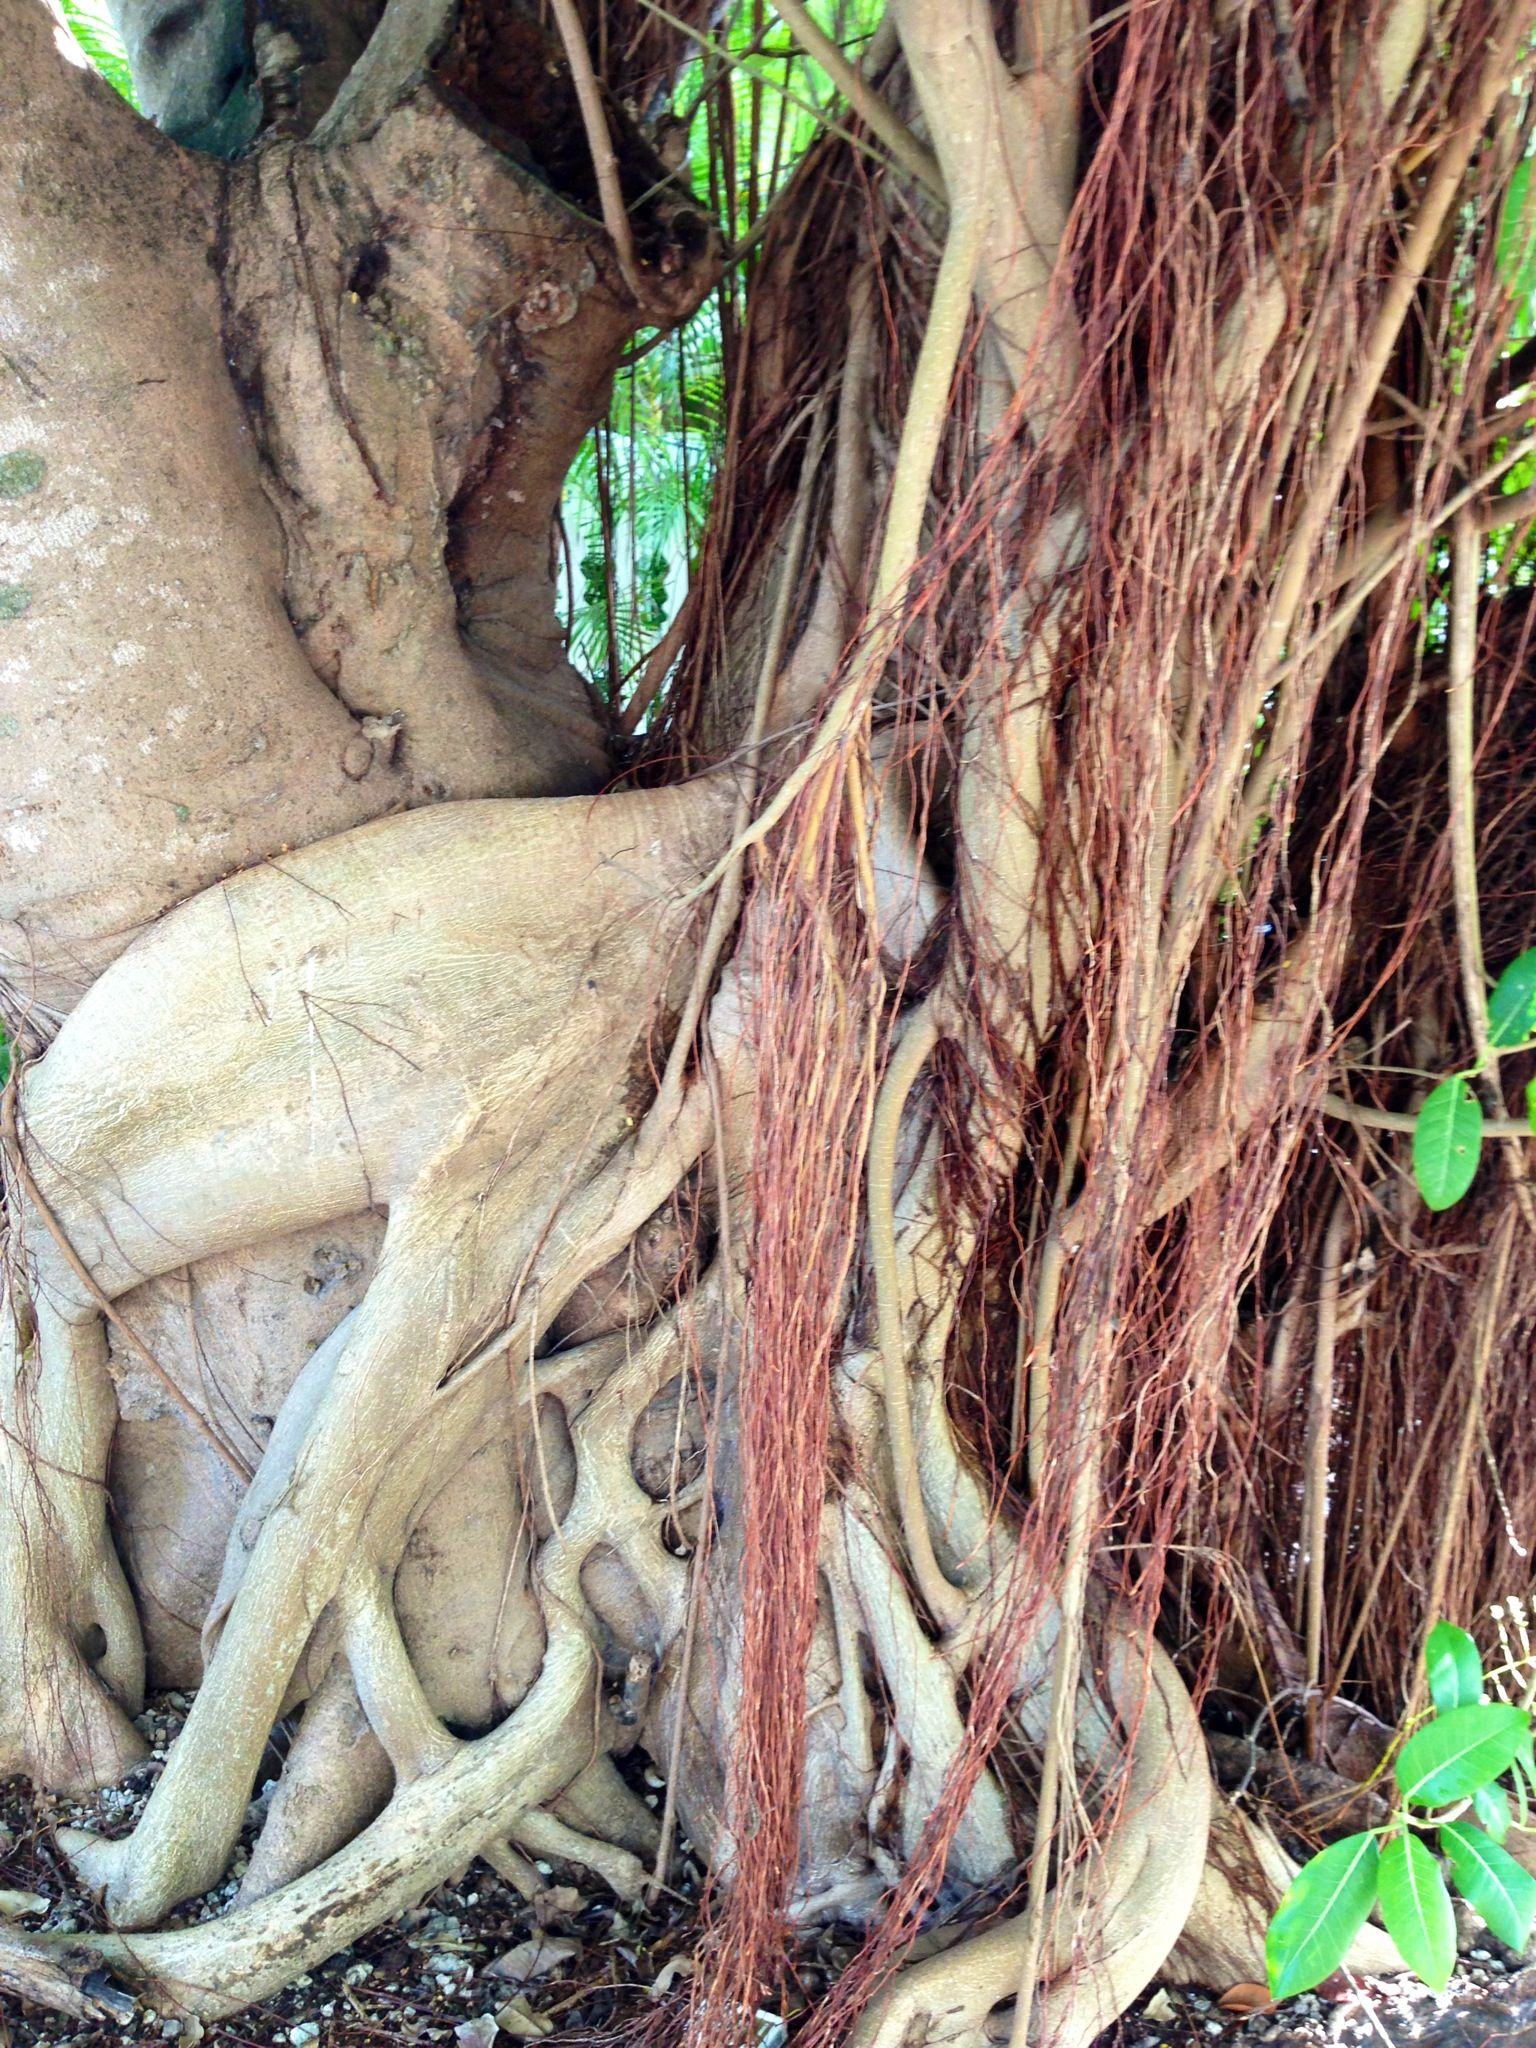 Twisted trunk of big ficus tree in Key West. photo by VHKW.com